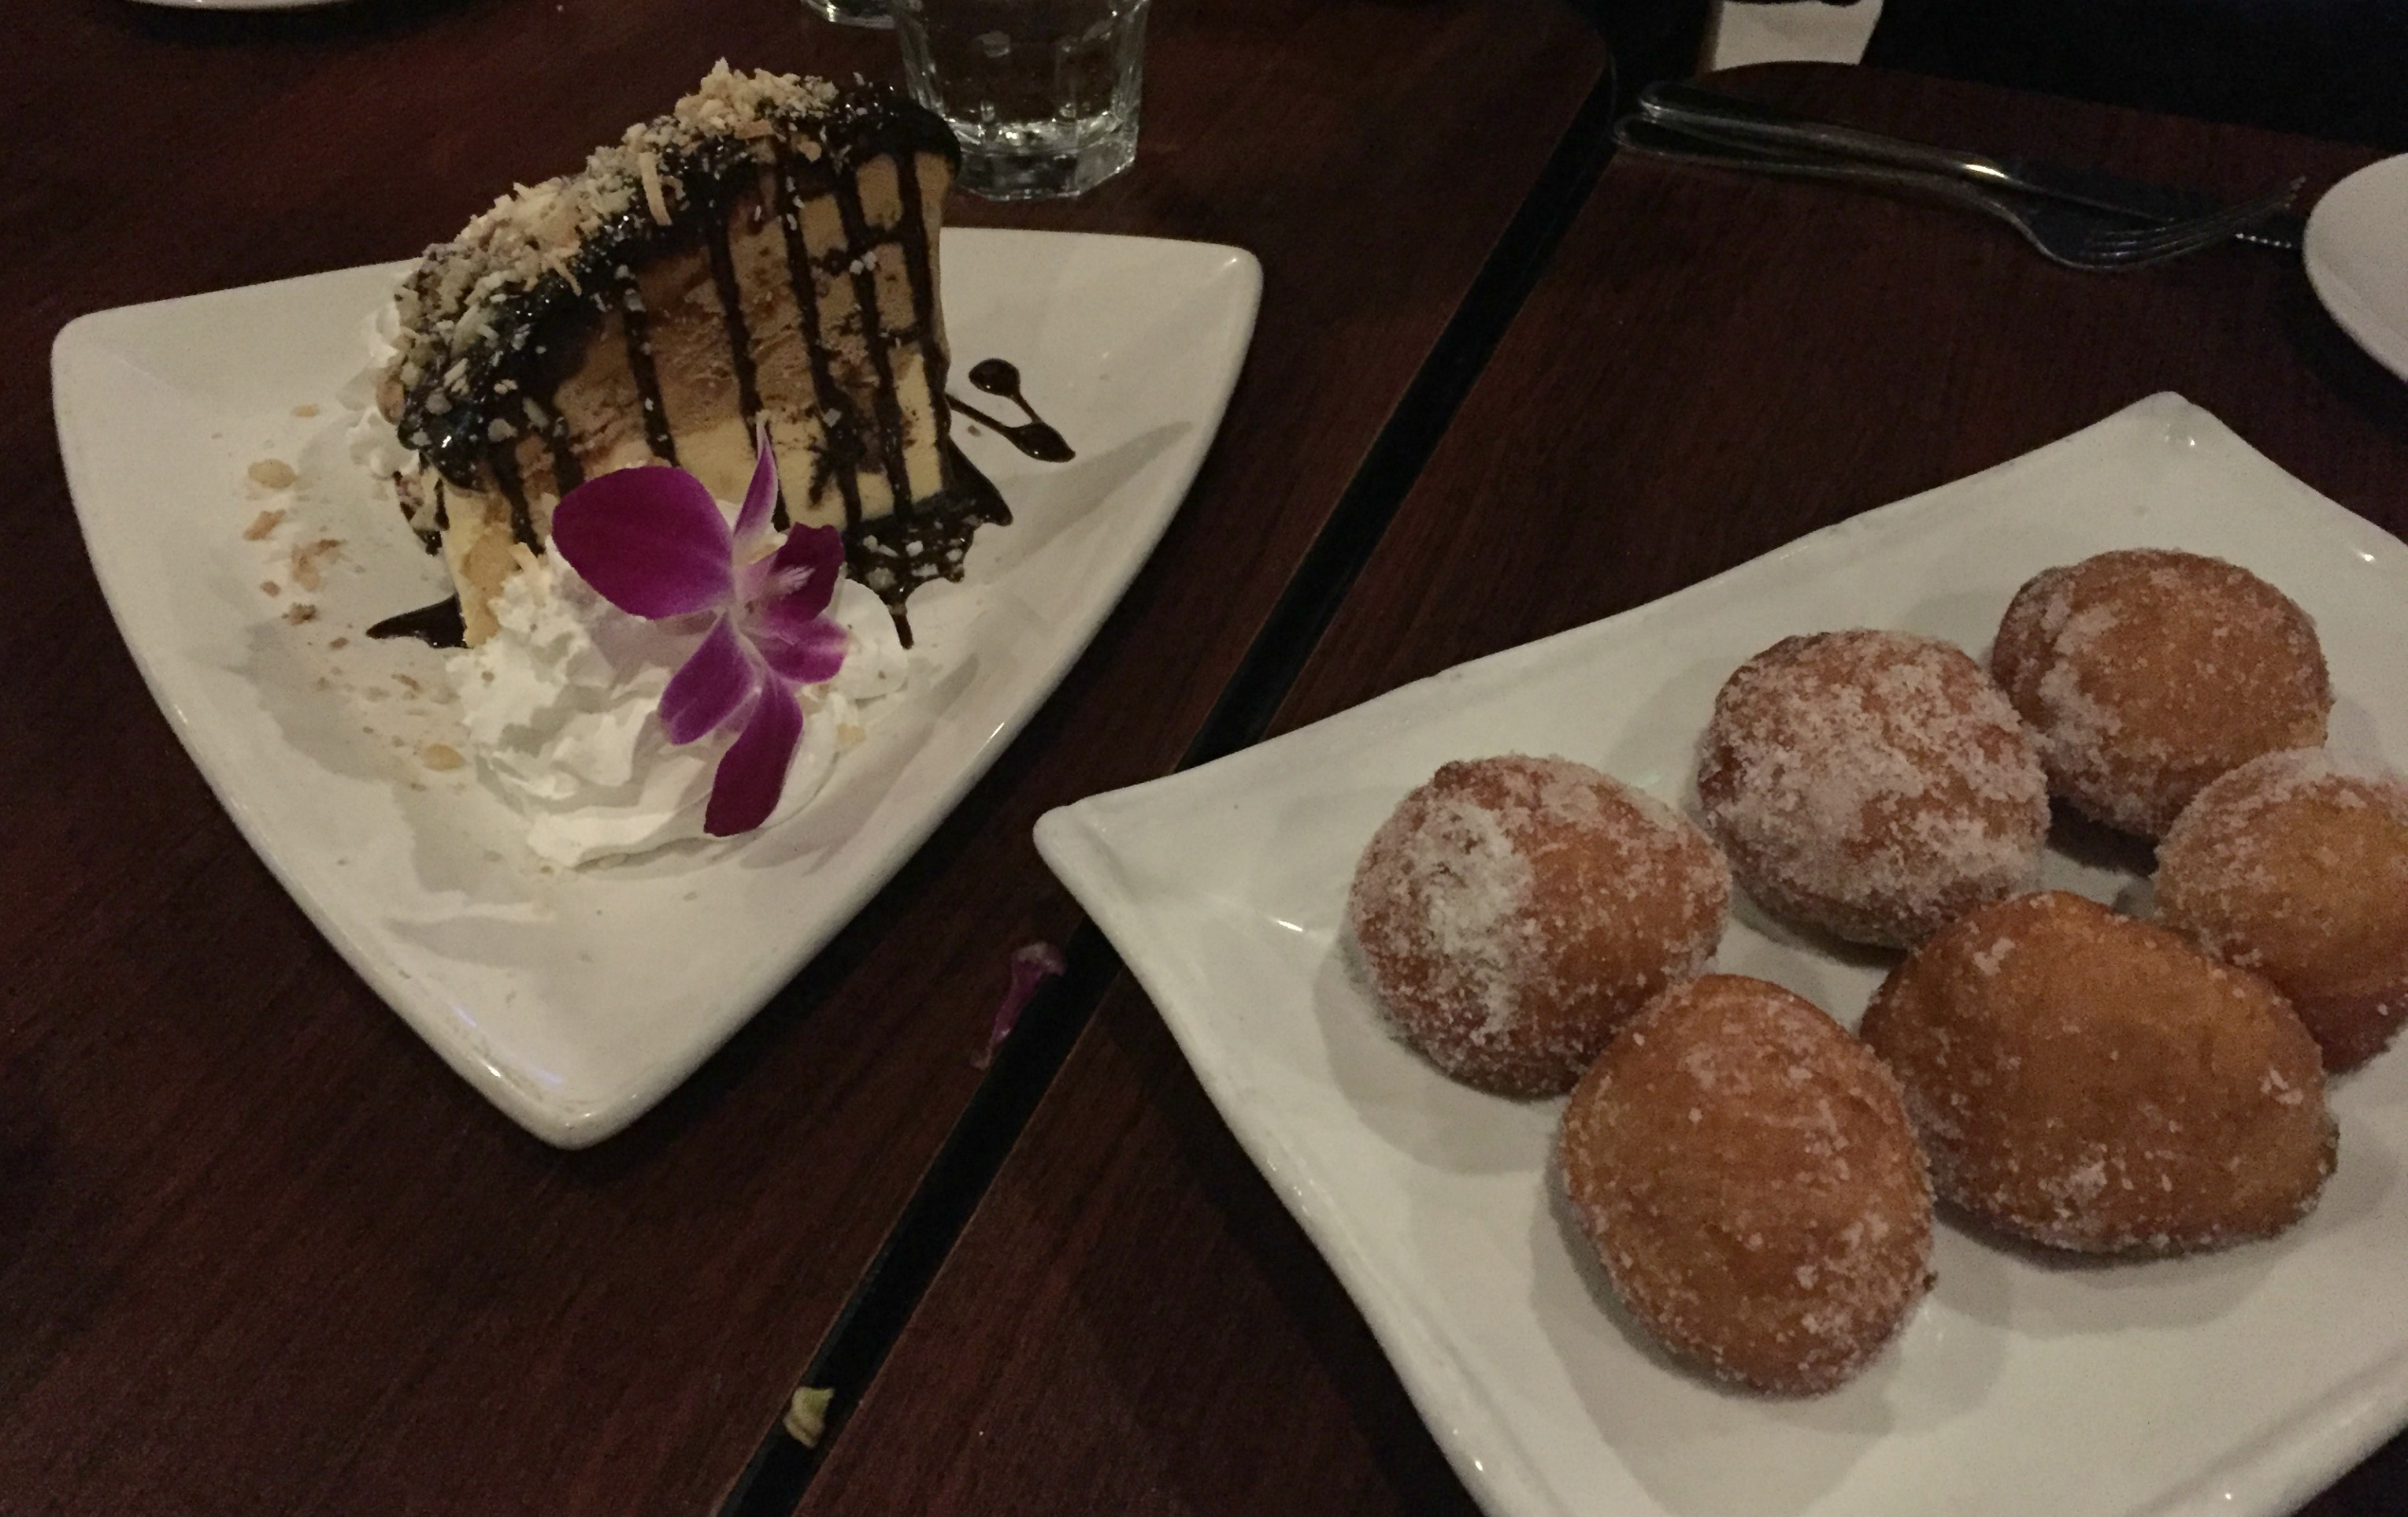 Noelani's Mud Pie and Malasadas